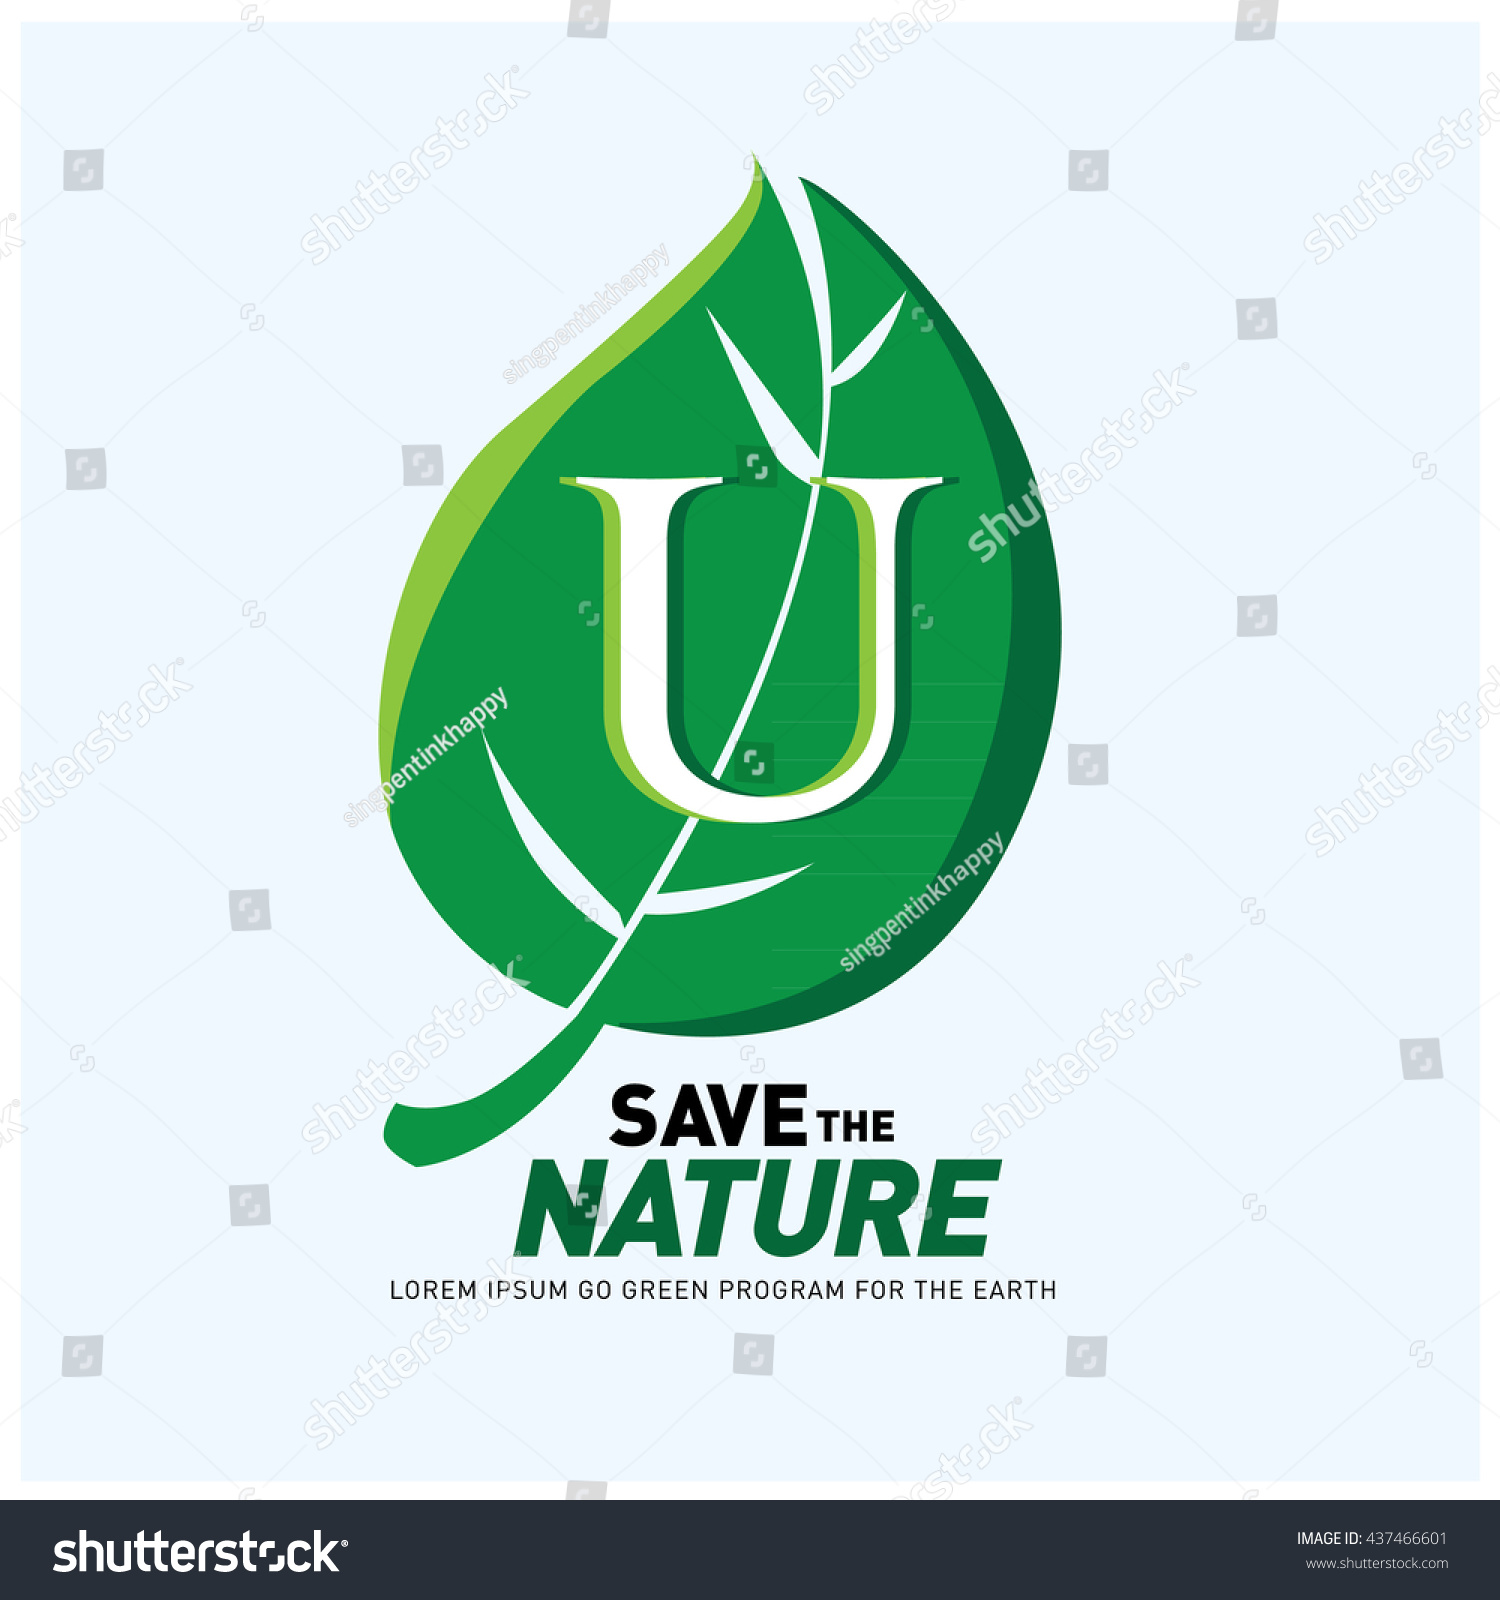 Poster design on save earth - Letter U Vector Logo And Icon Save The Nature Go Green Poster Design Ecology